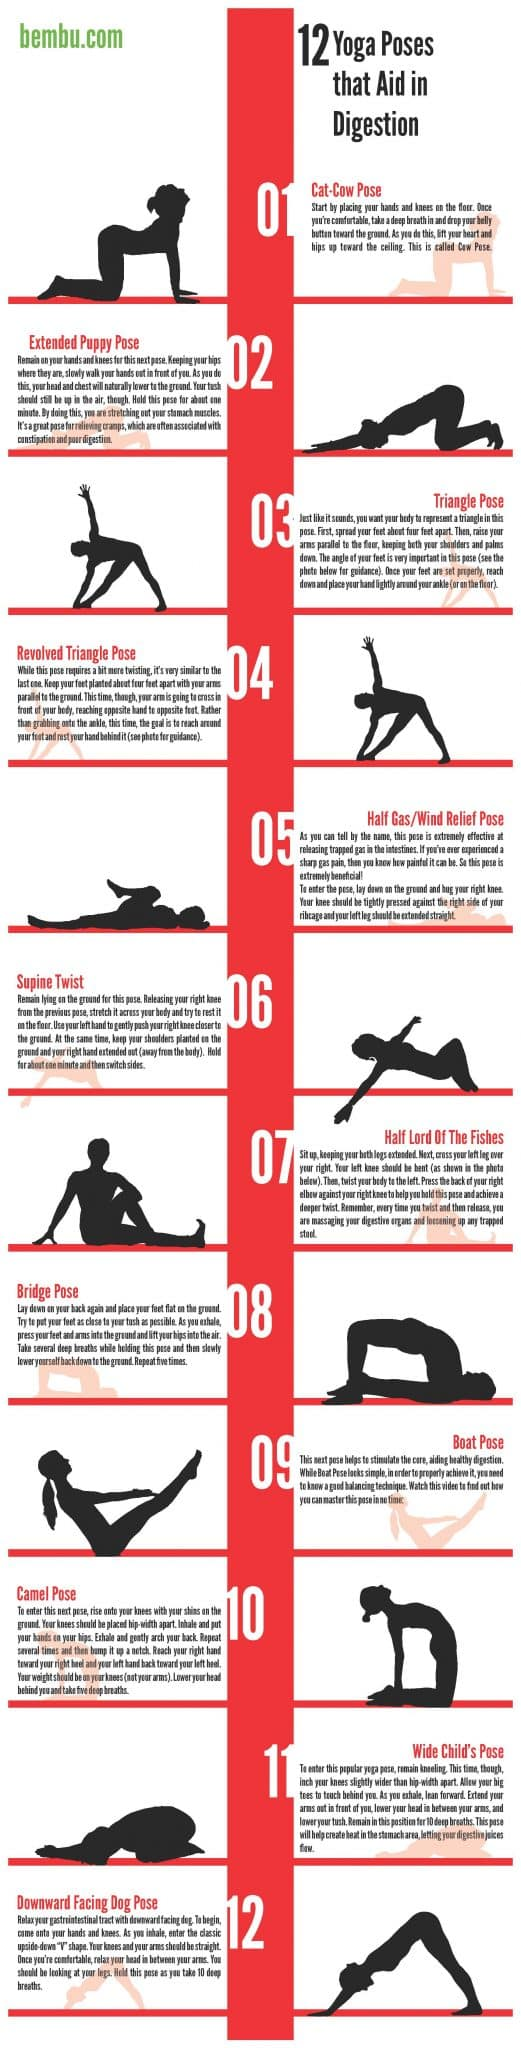 yoga poses to help digestion